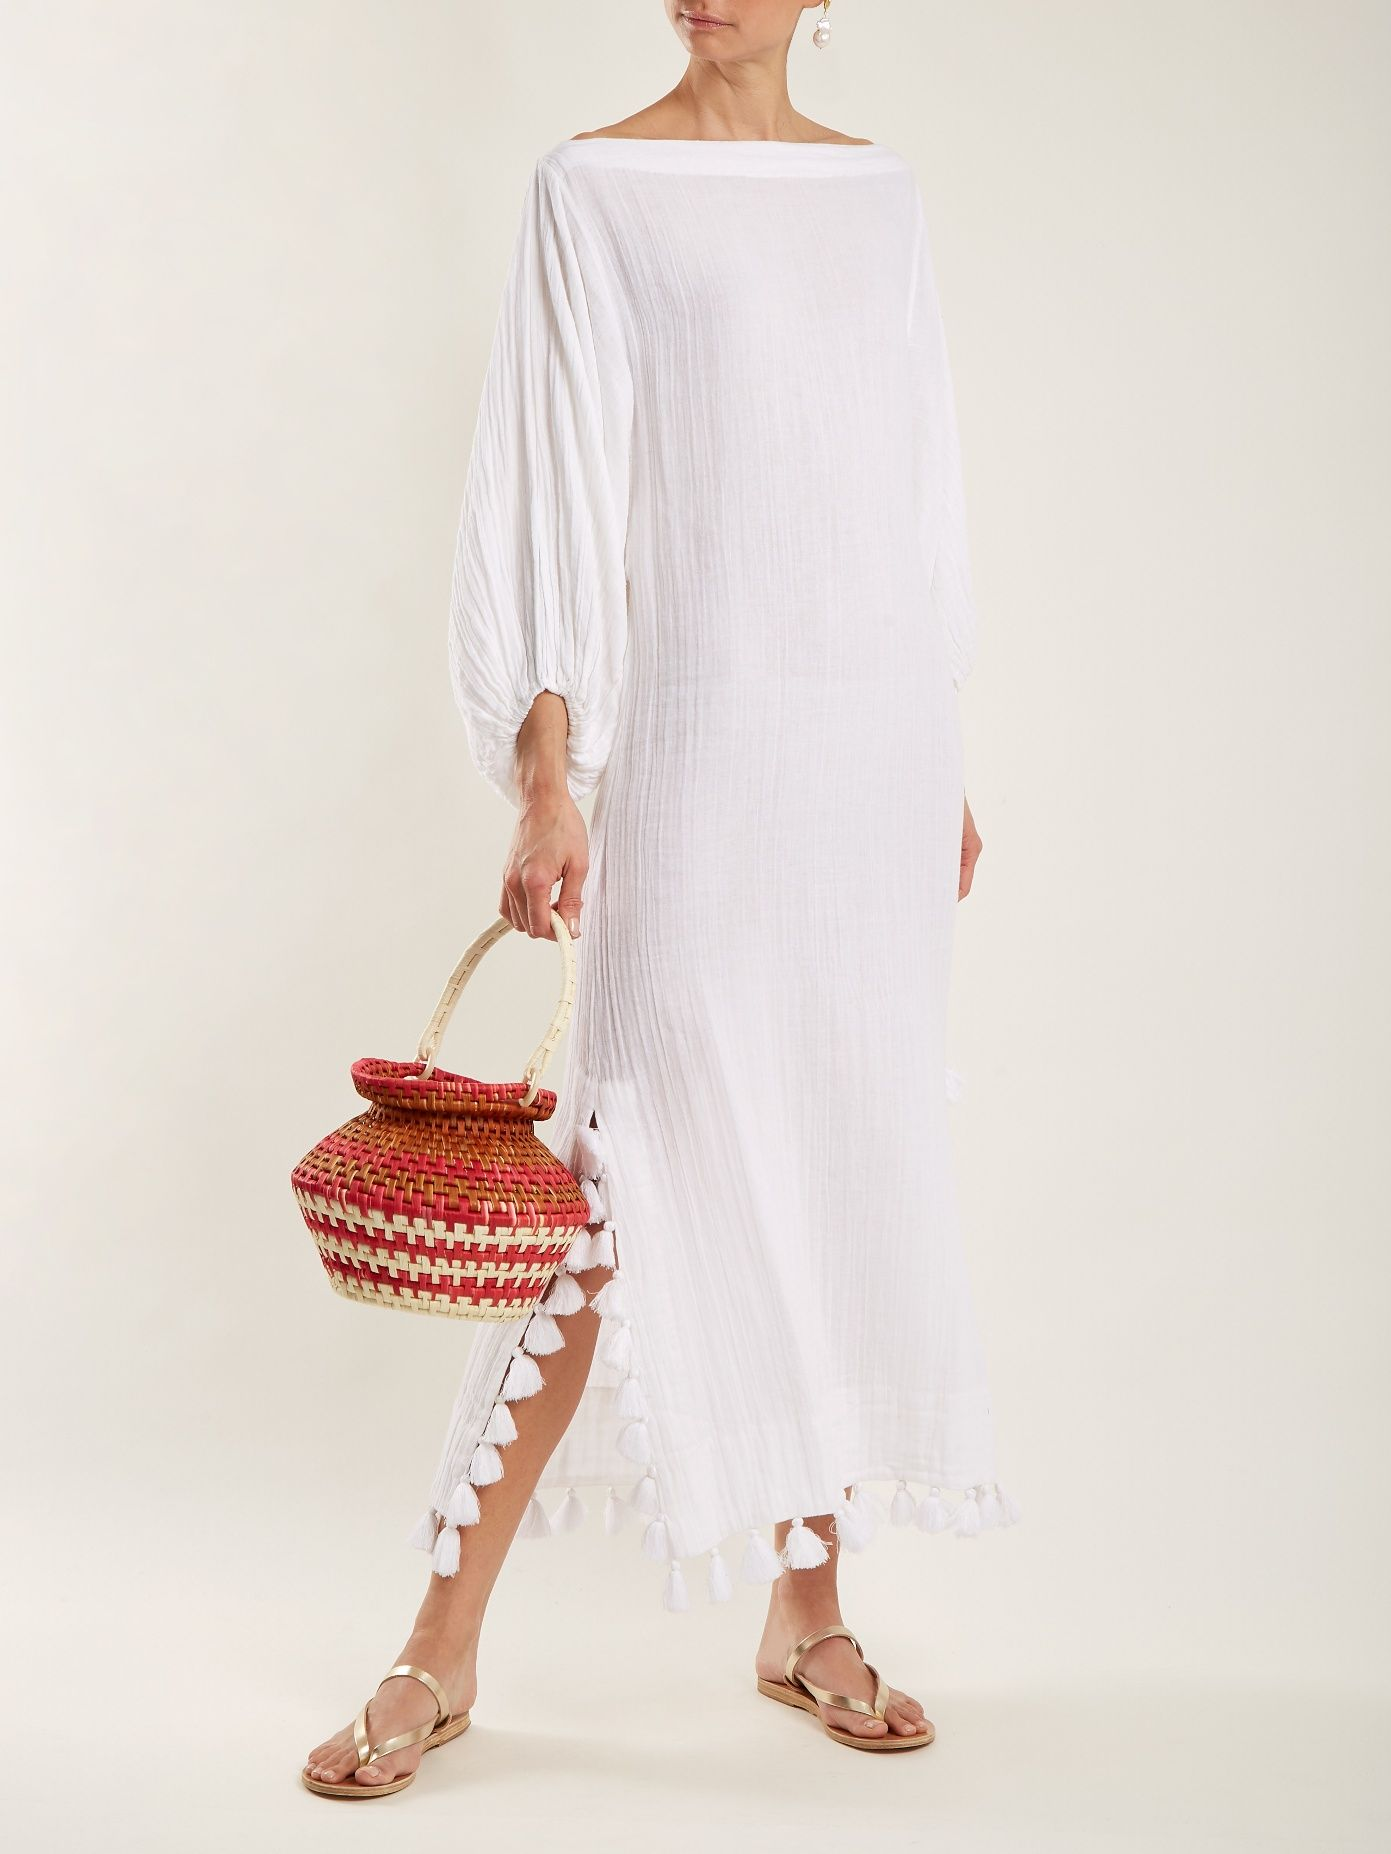 Delilah off-shoulder tassel-trimmed dress Rhode Resort Discount Pictures Cheap Online Shop Big Sale Cheap Price Limited Edition Cheap Online Low Price Fee Shipping Sale Online Vg8op